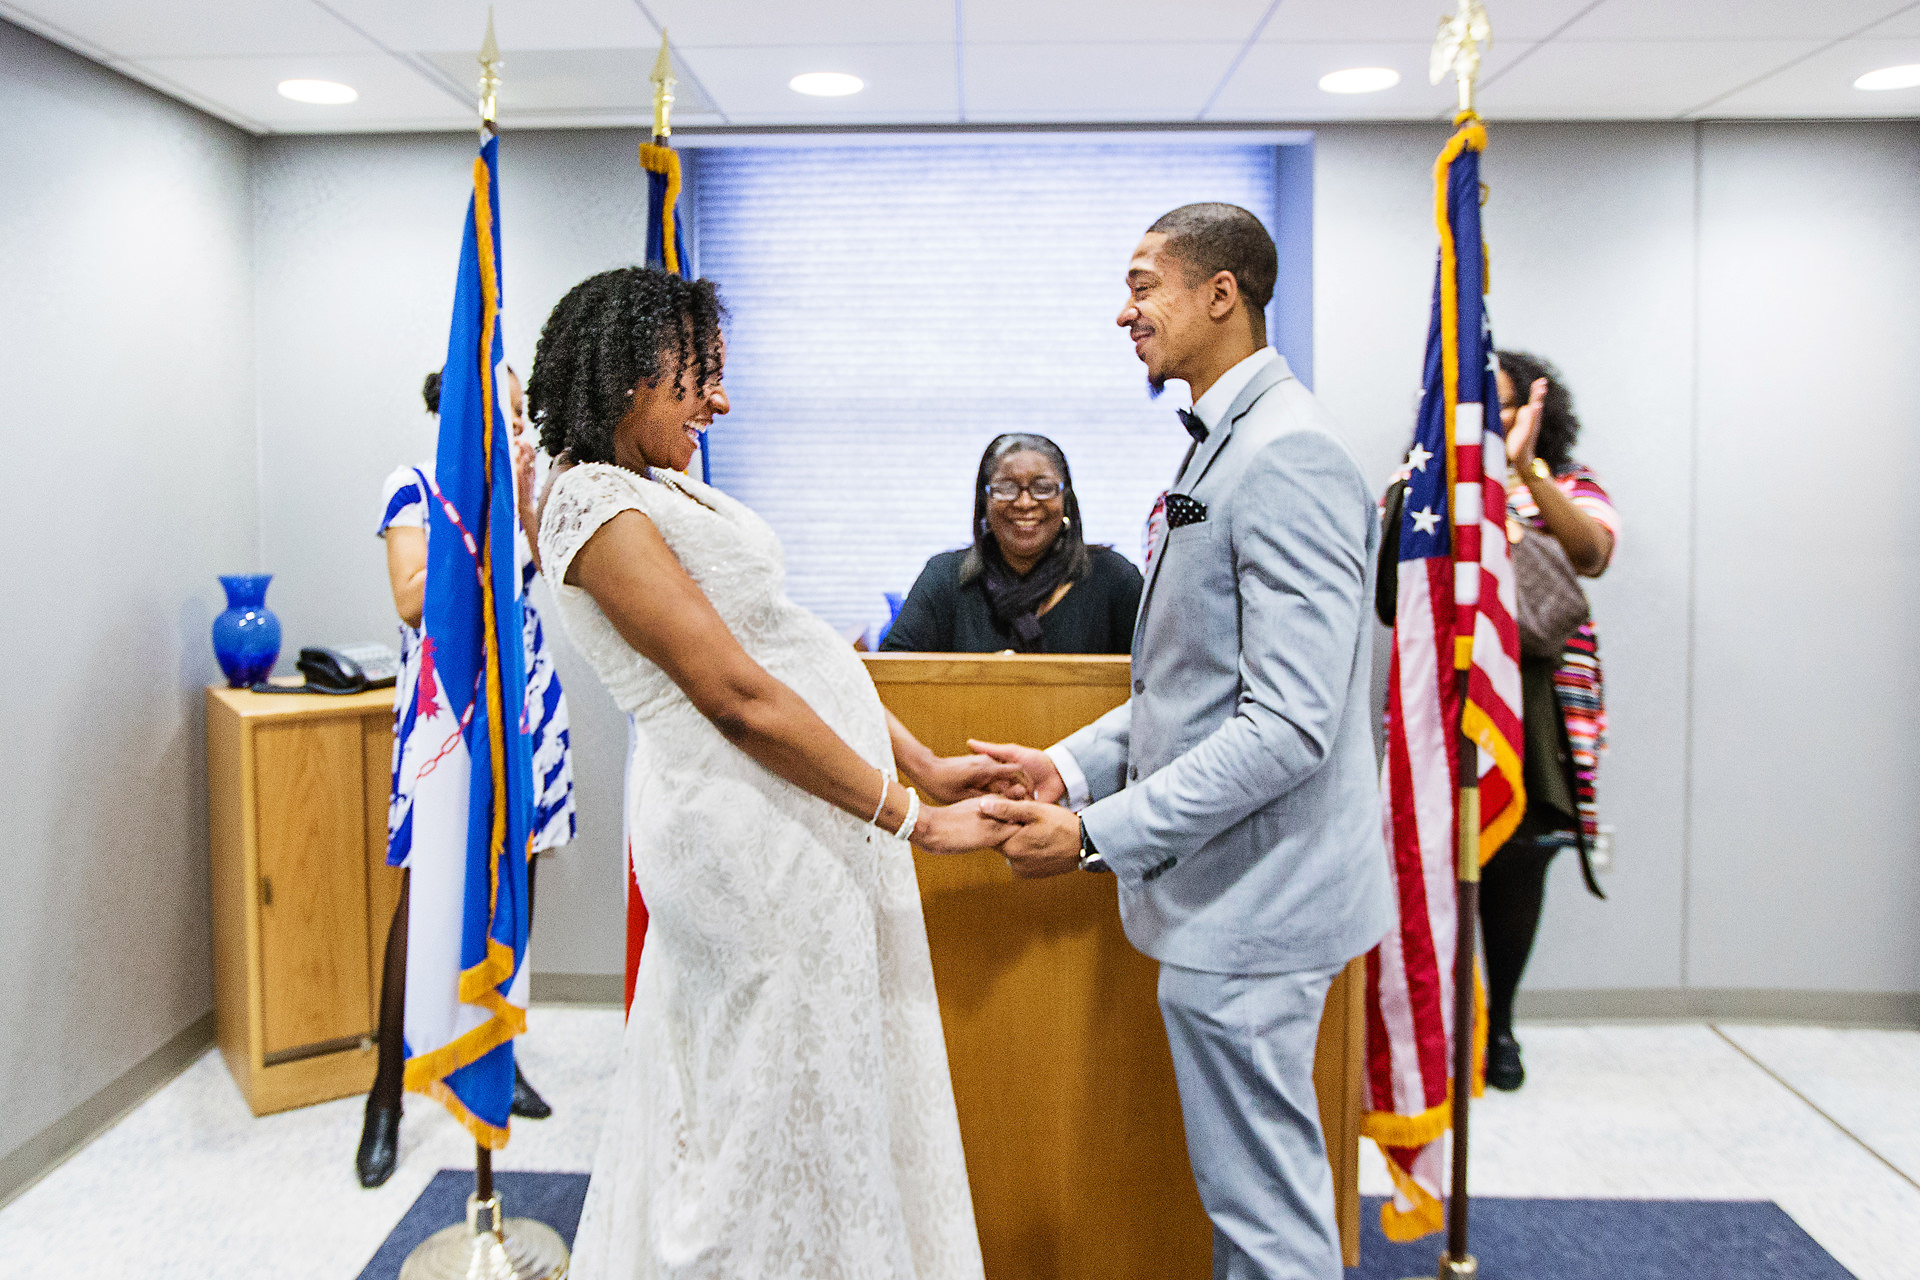 NYC Marriage Bureau Elopement Ceremony Image | The bride and groom beam and giggle at each other